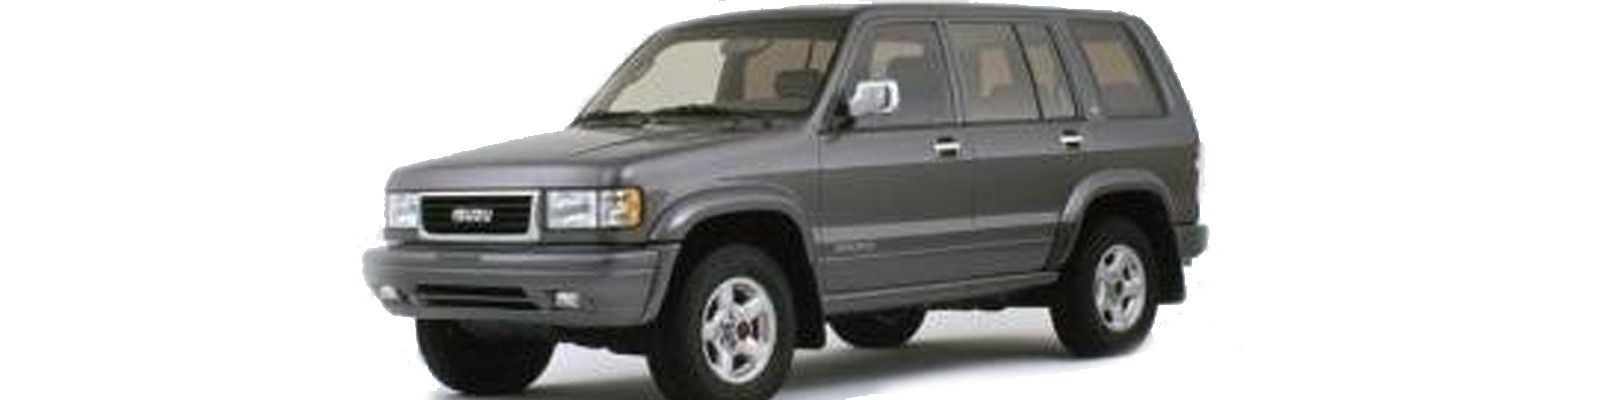 Isuzu Trooper Lwb Accessories 1992 1997 4x4 Accessories